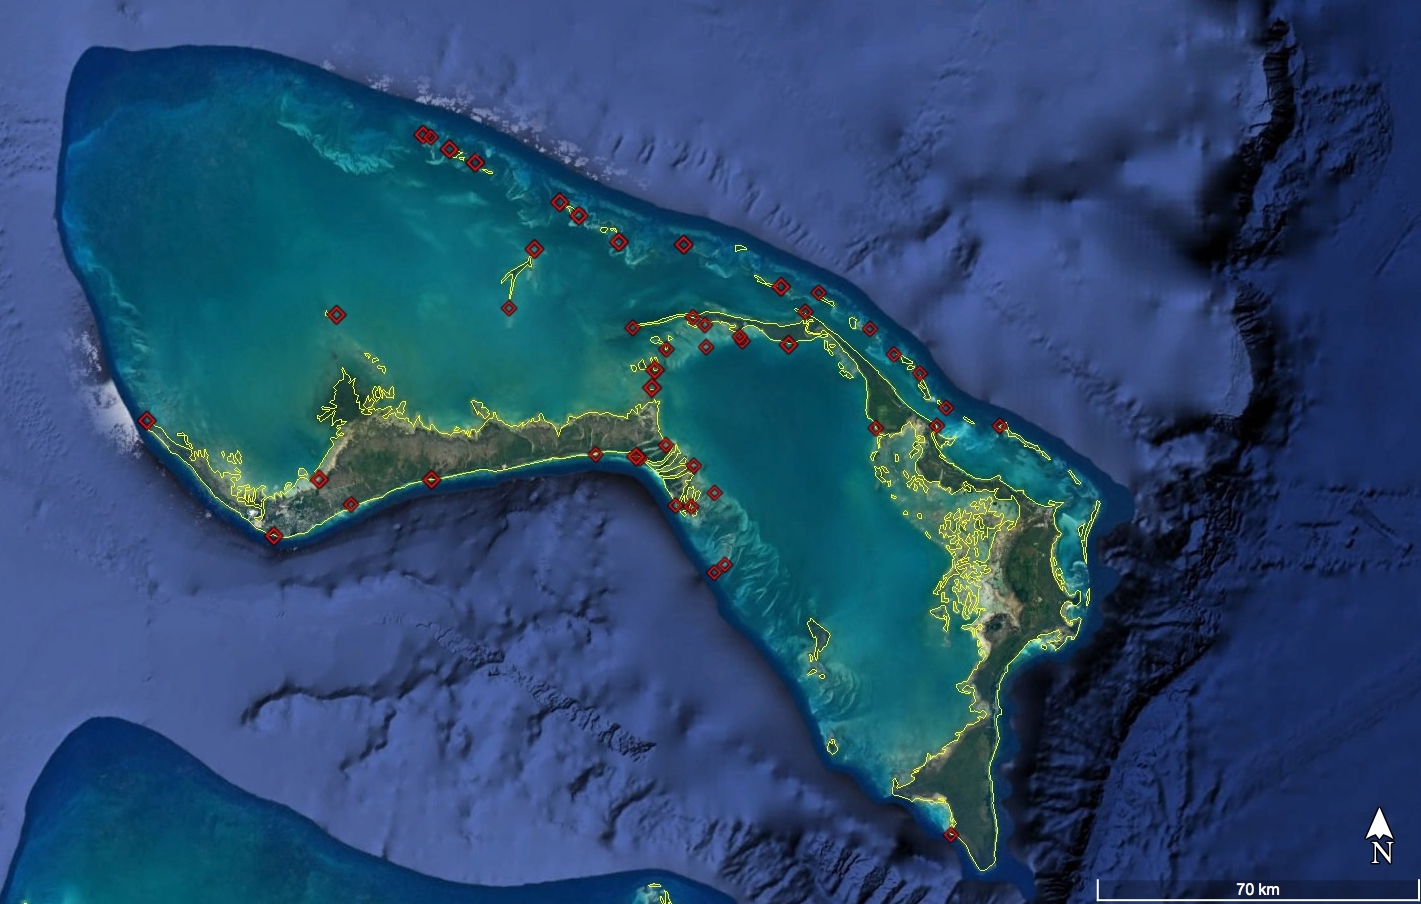 Grand bahama to abaco where do bonefish go to spawn fisheries identifying pre spawning aggregation sites and spawning locations for bonefish around the bahamas 2 identifying key habitats for bonefish larval publicscrutiny Choice Image